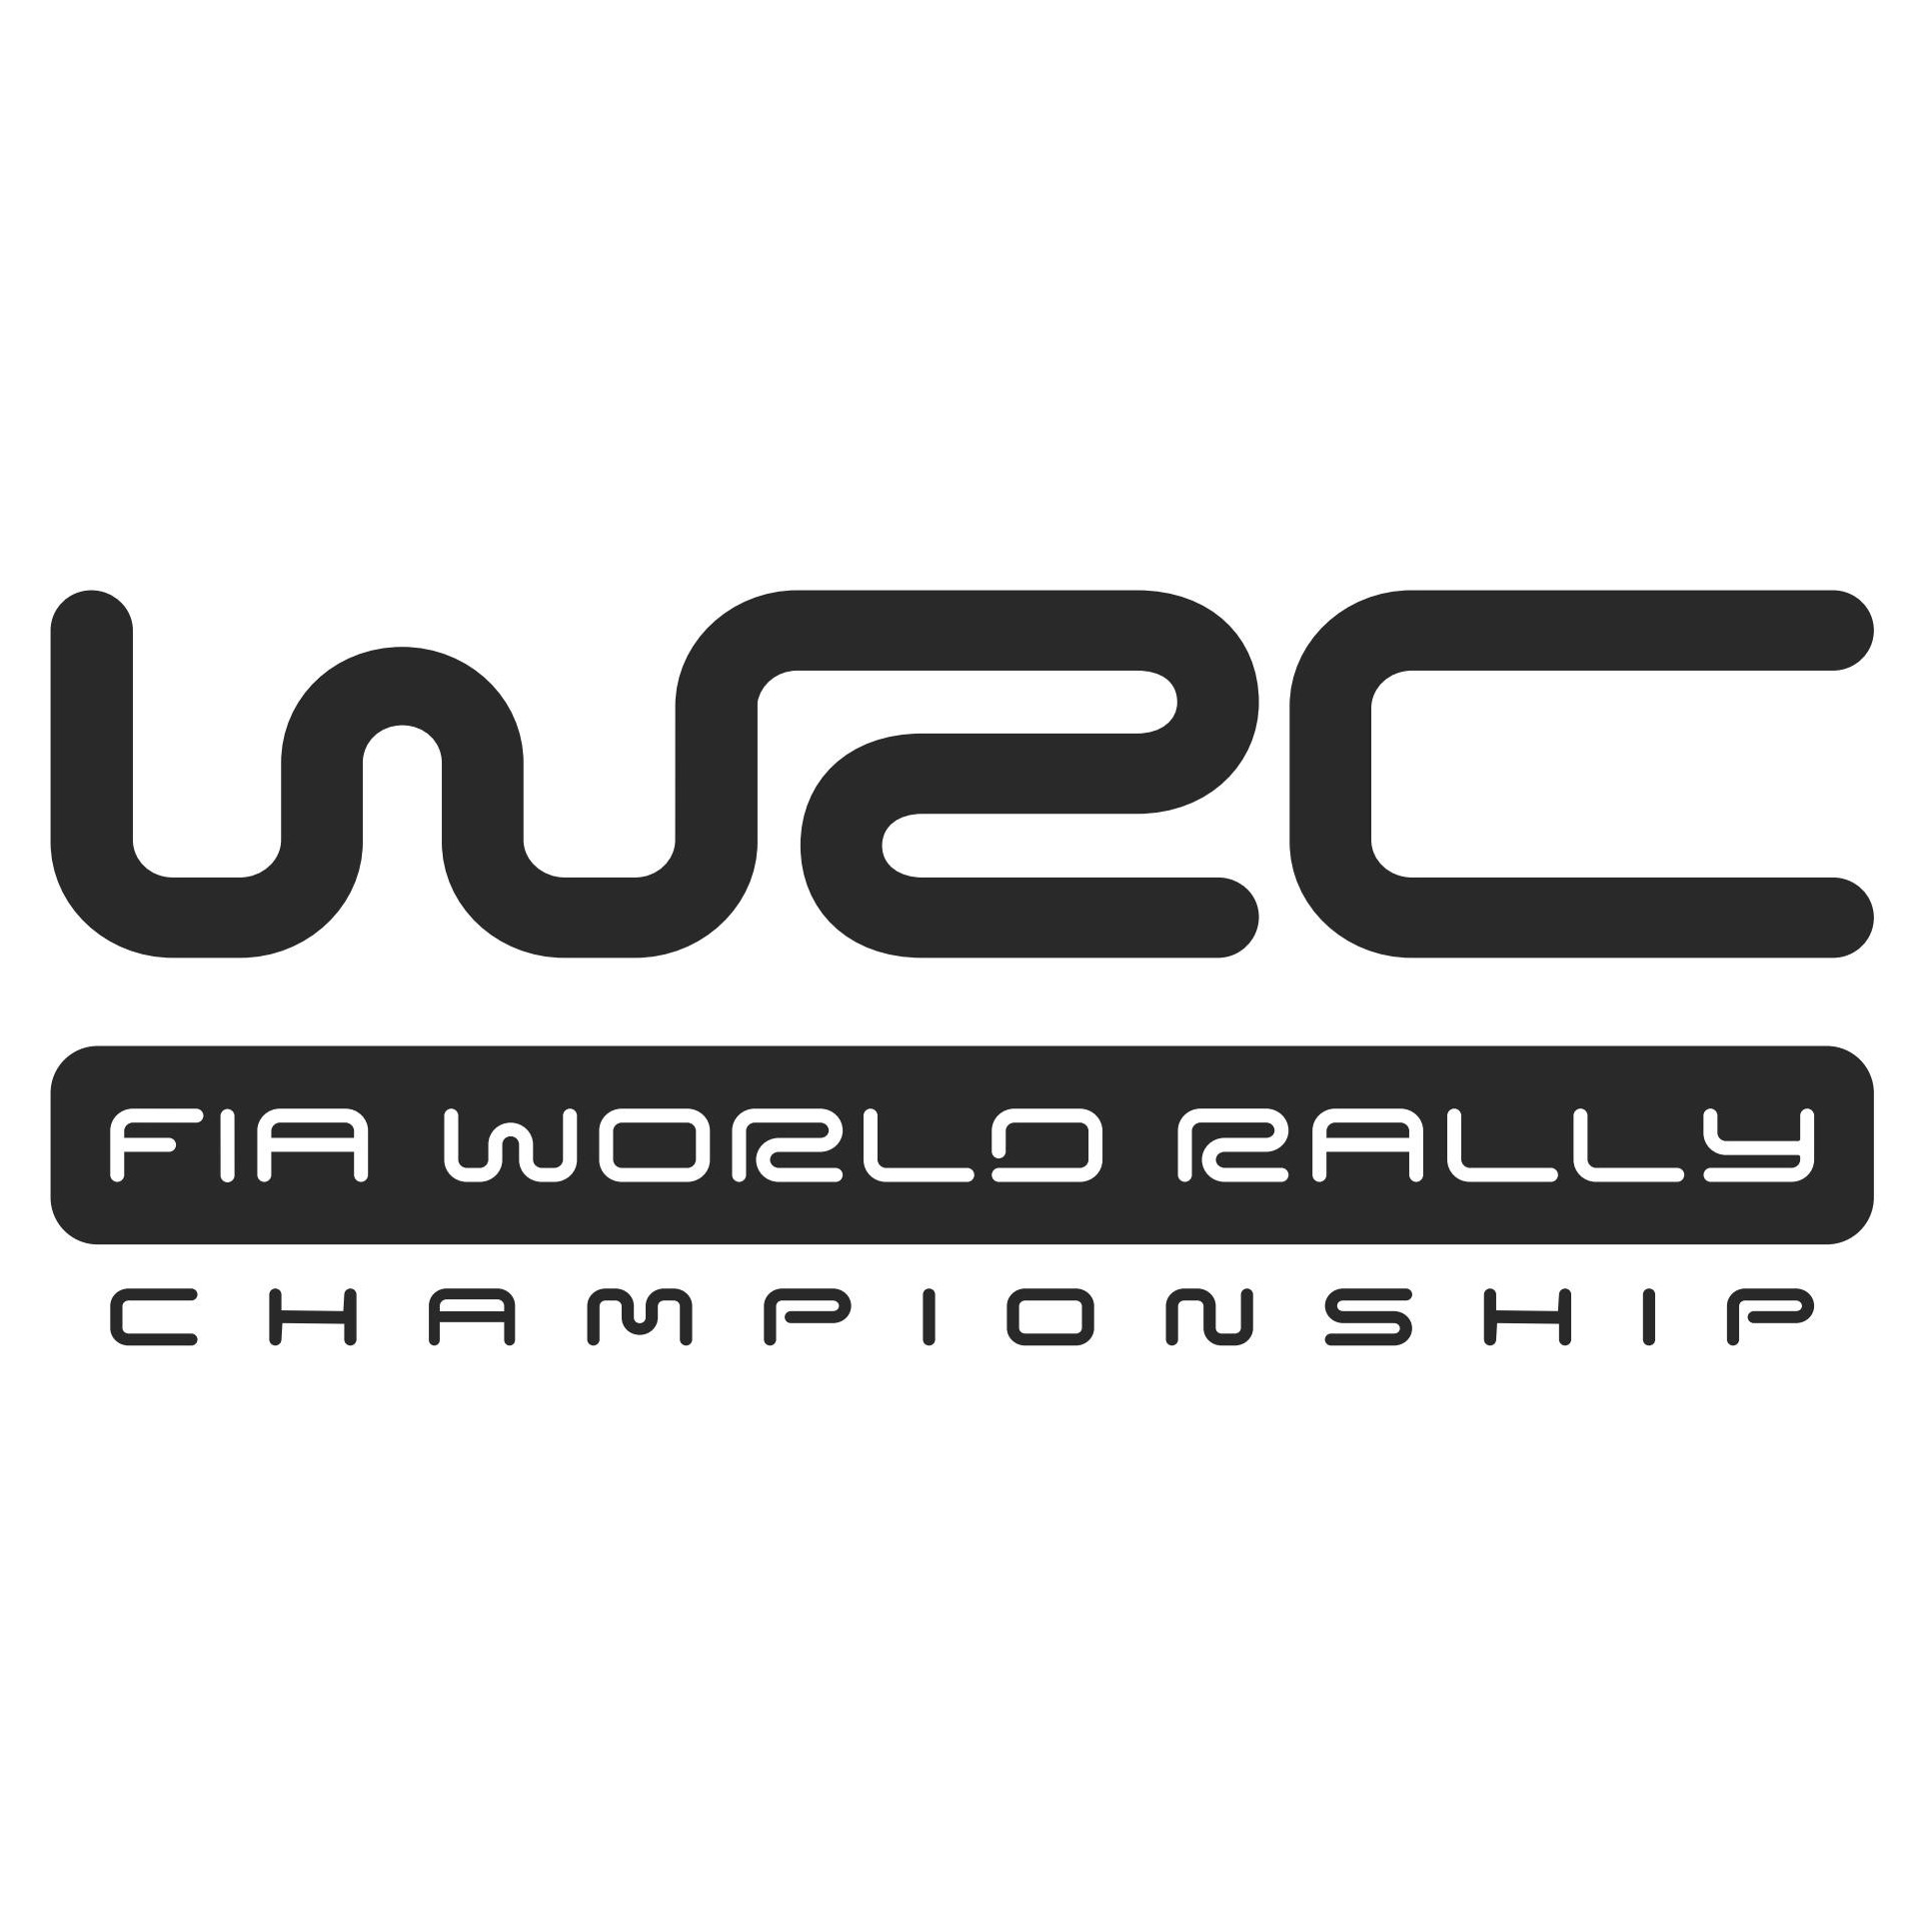 2015 World Rally Championship